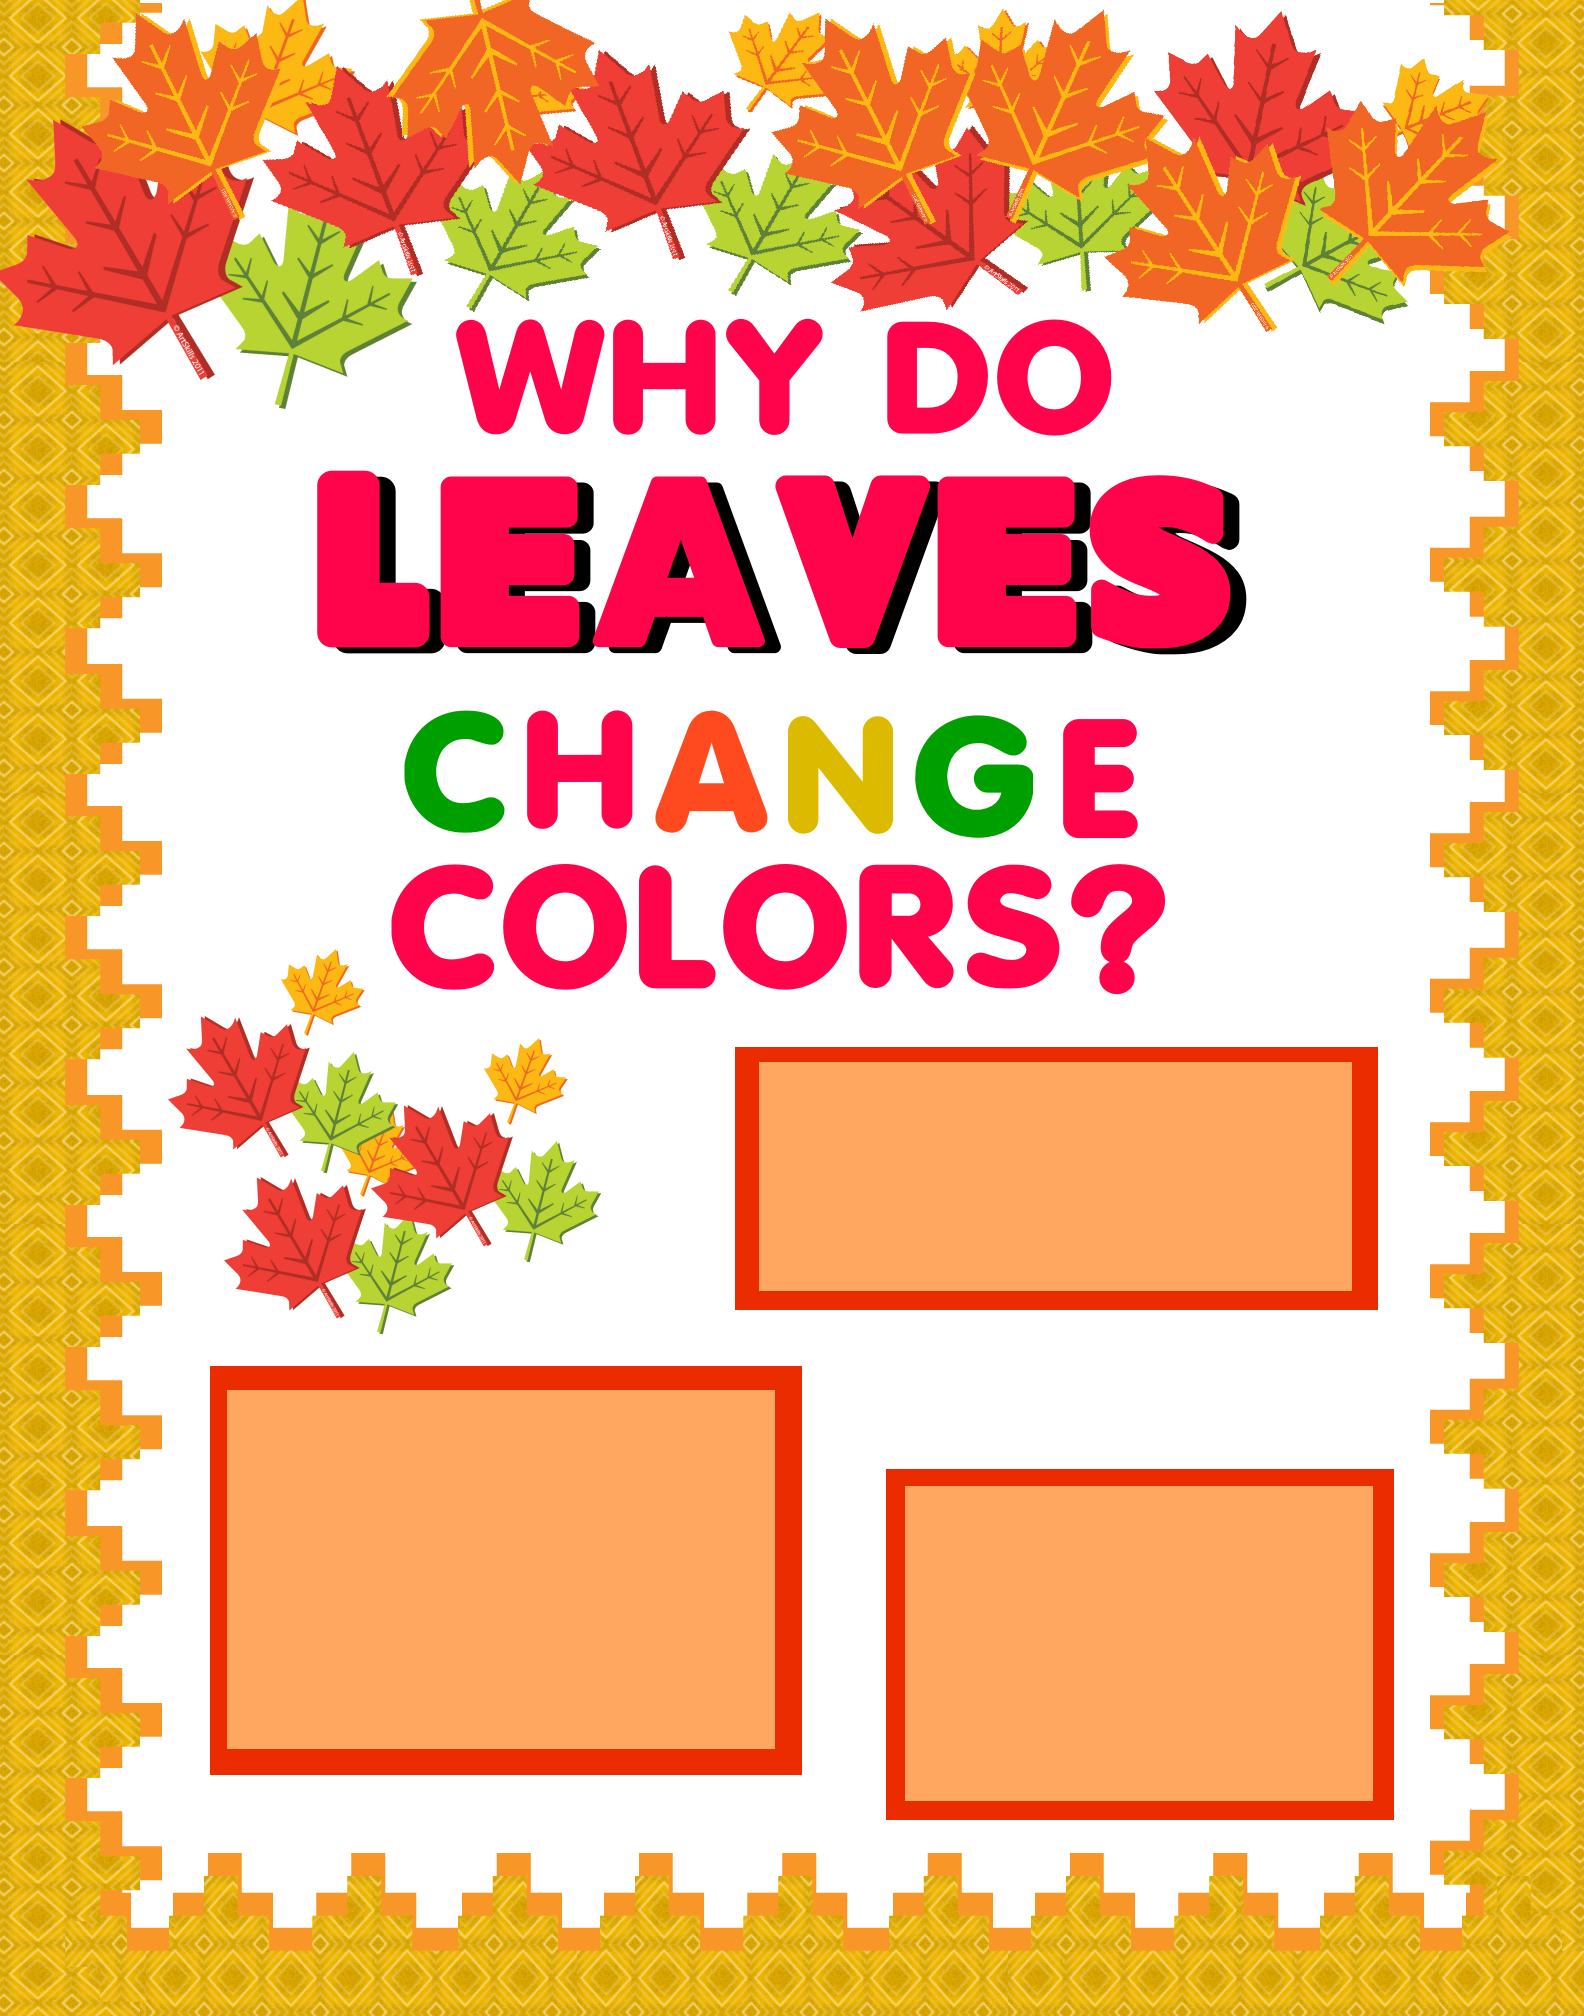 Make A Science Fair Project About Why Leaves Change Colors